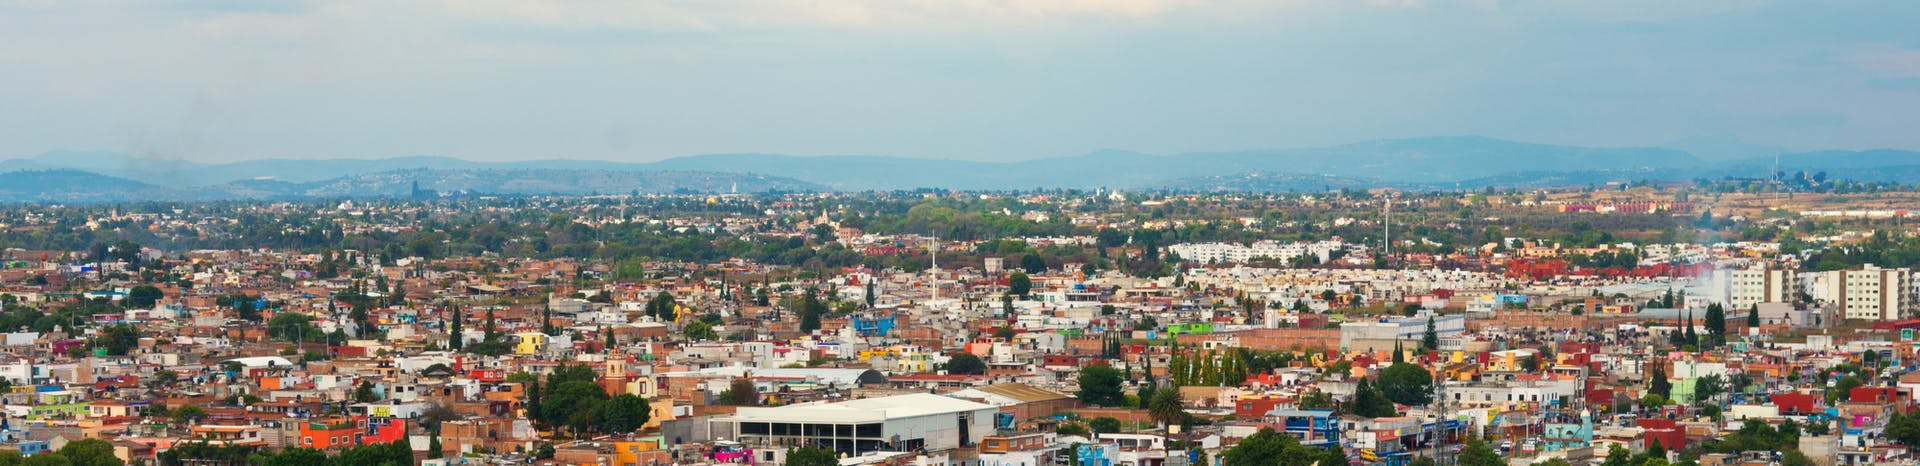 Picture of Cholula